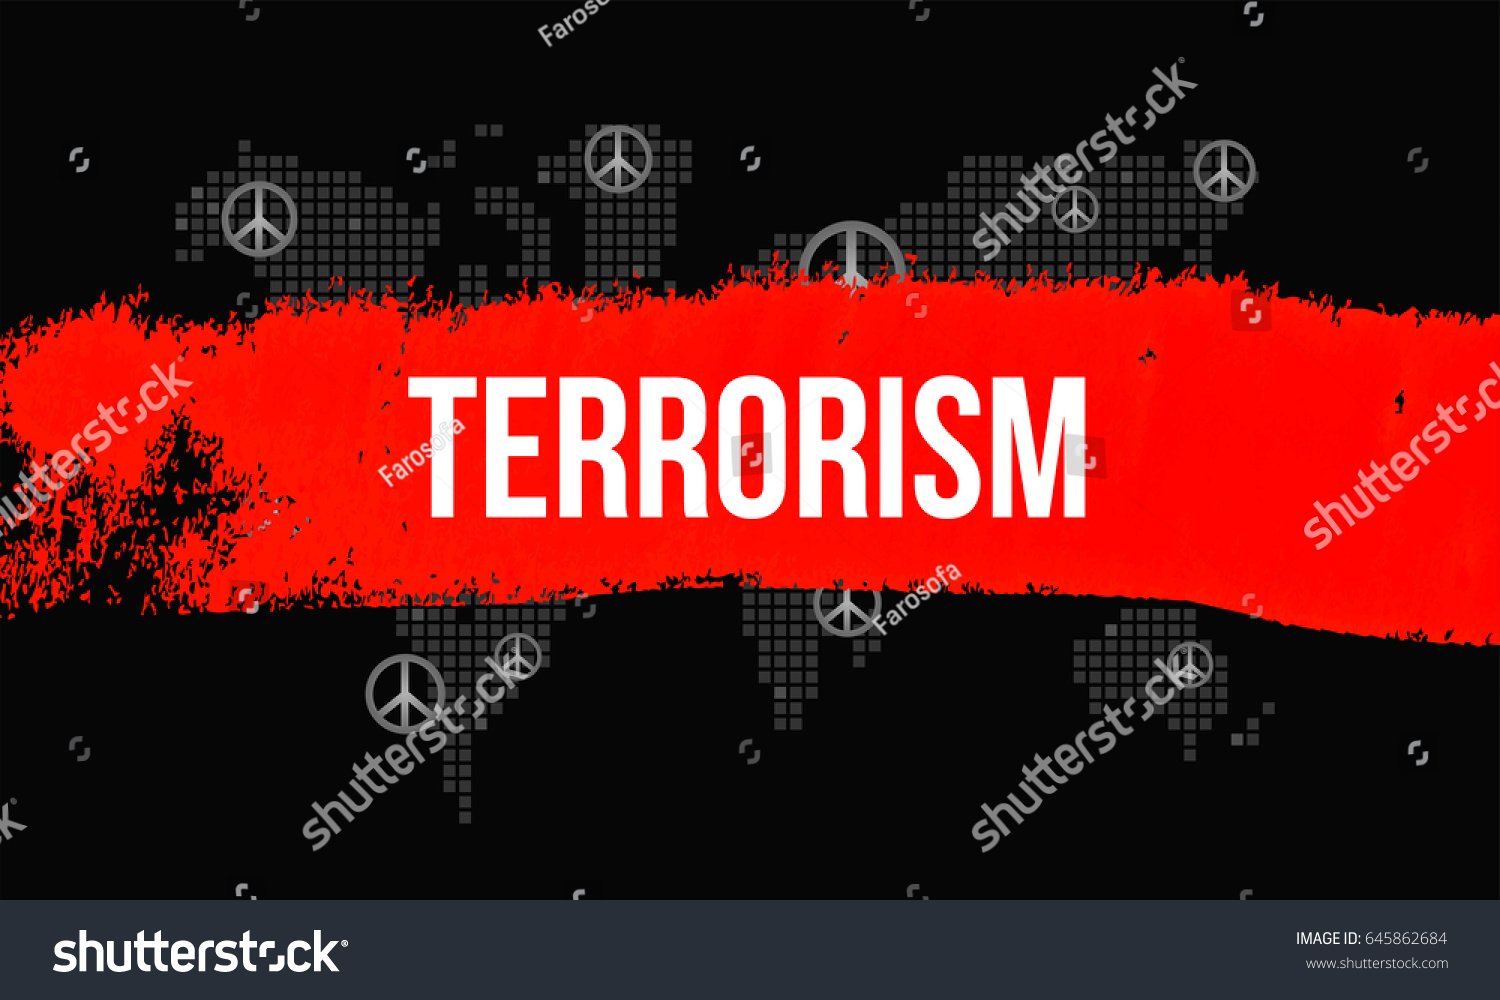 essay terrorism threat global peace View and download global peace  so the threat of terrorism and terrorist attacks in  anti-semitism and palestinian terrorism global view full essay.